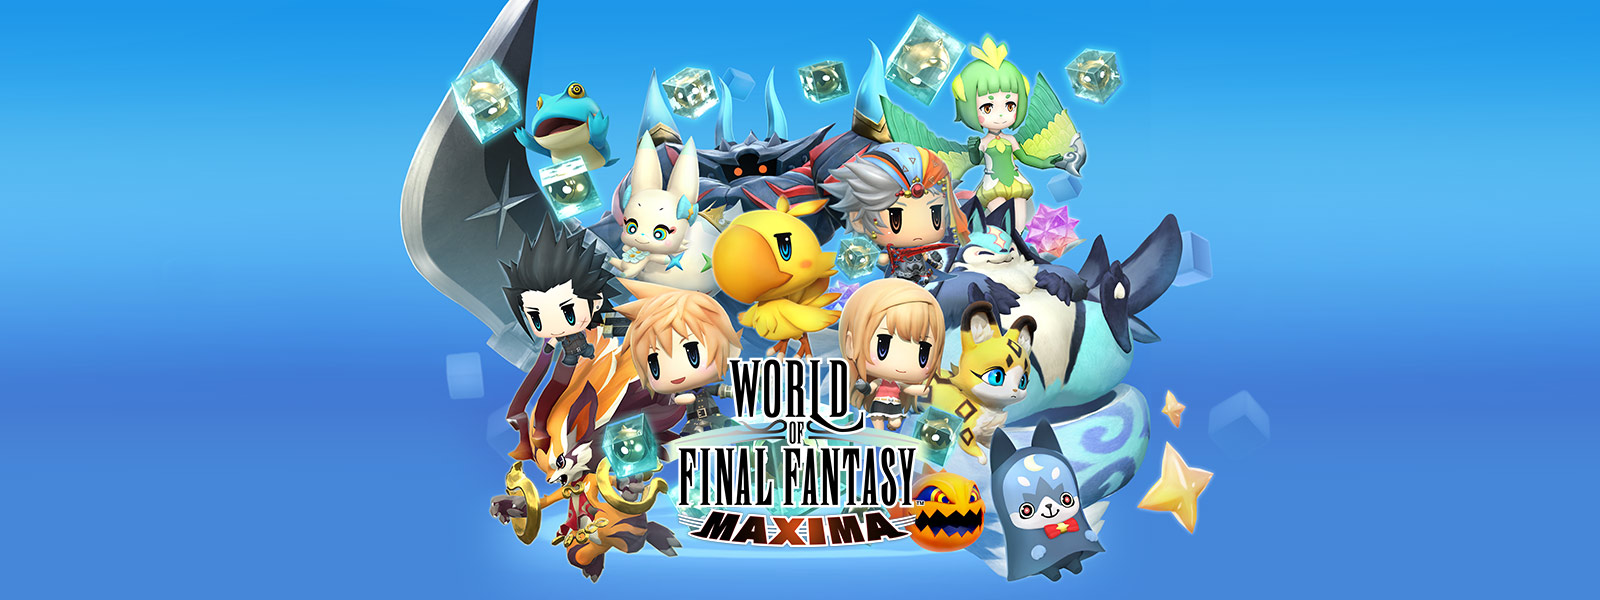 Characters from WORLD OF FINAL FANTASY MAXIMA jumping out from the centre of the screen